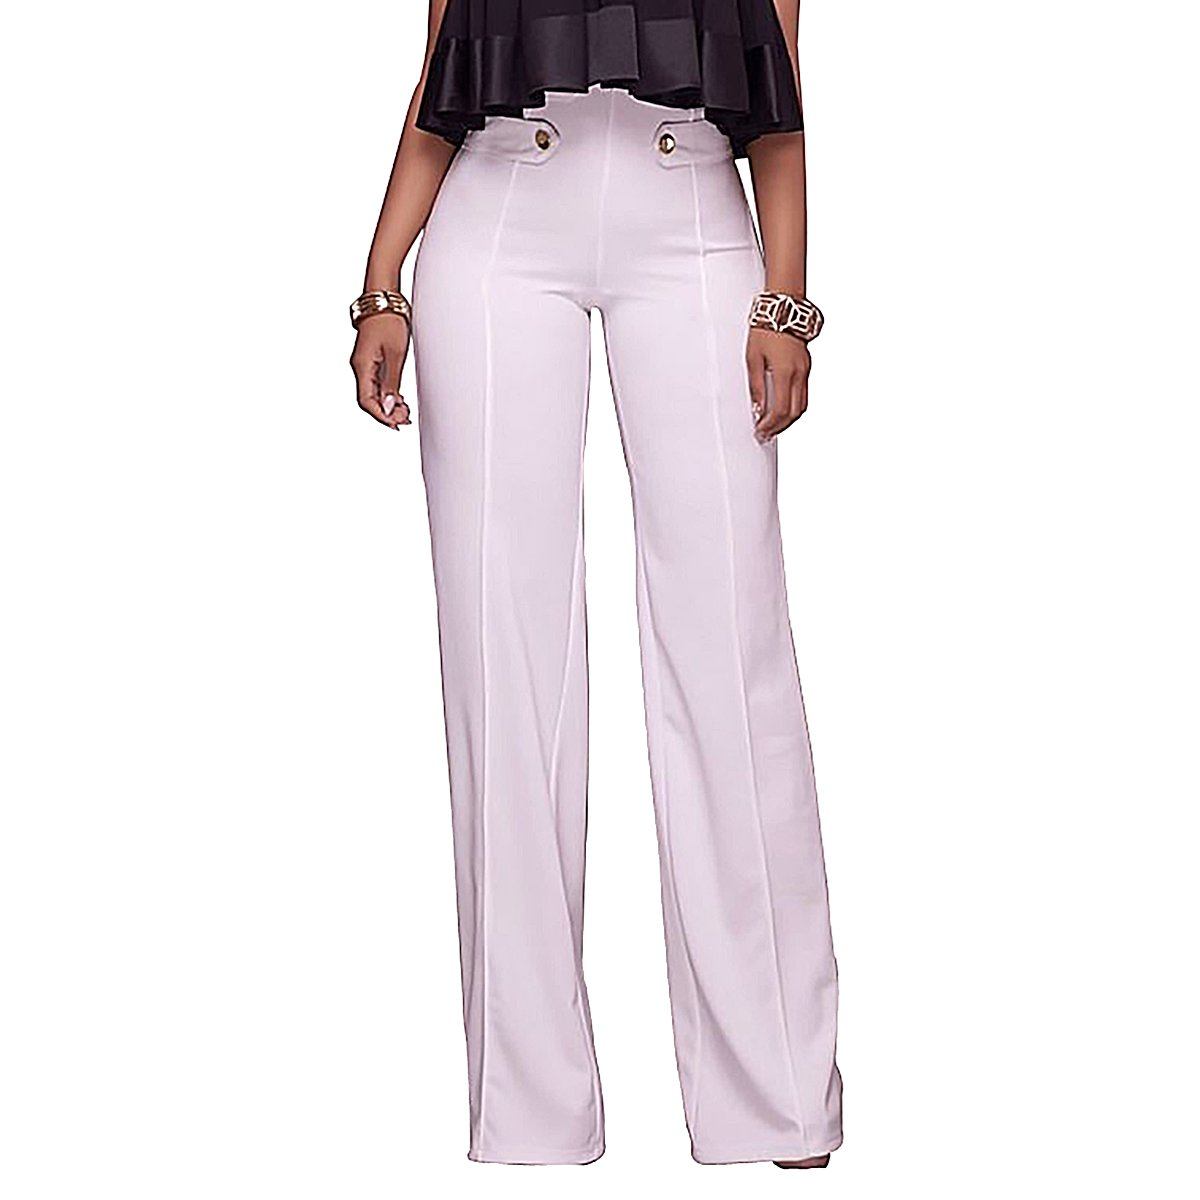 Women's High Waisted Wide Leg Workwear Trousers Long Pants With Buttons QiuLan